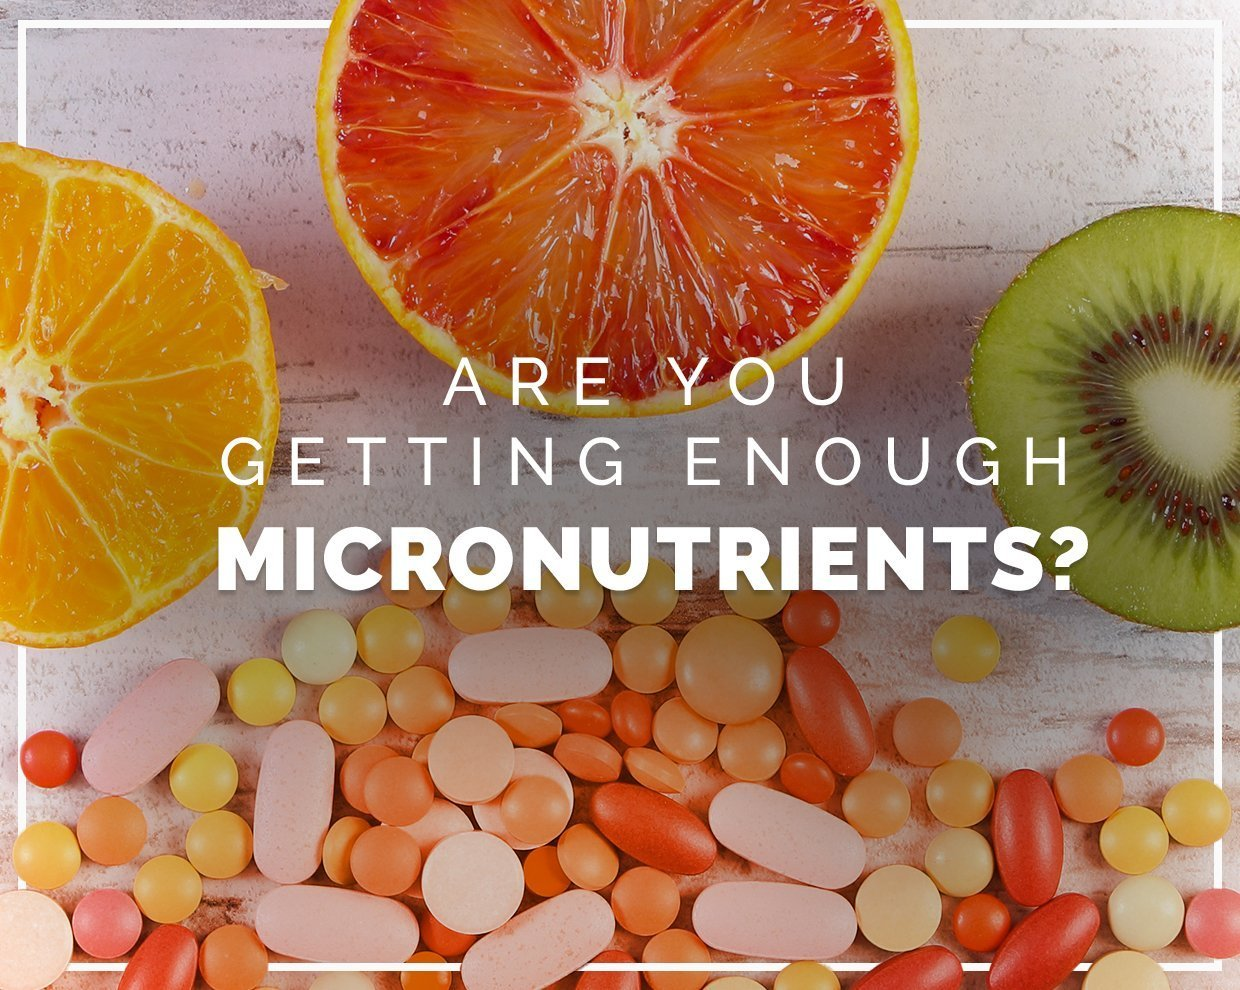 Are you getting enough micronutrients?